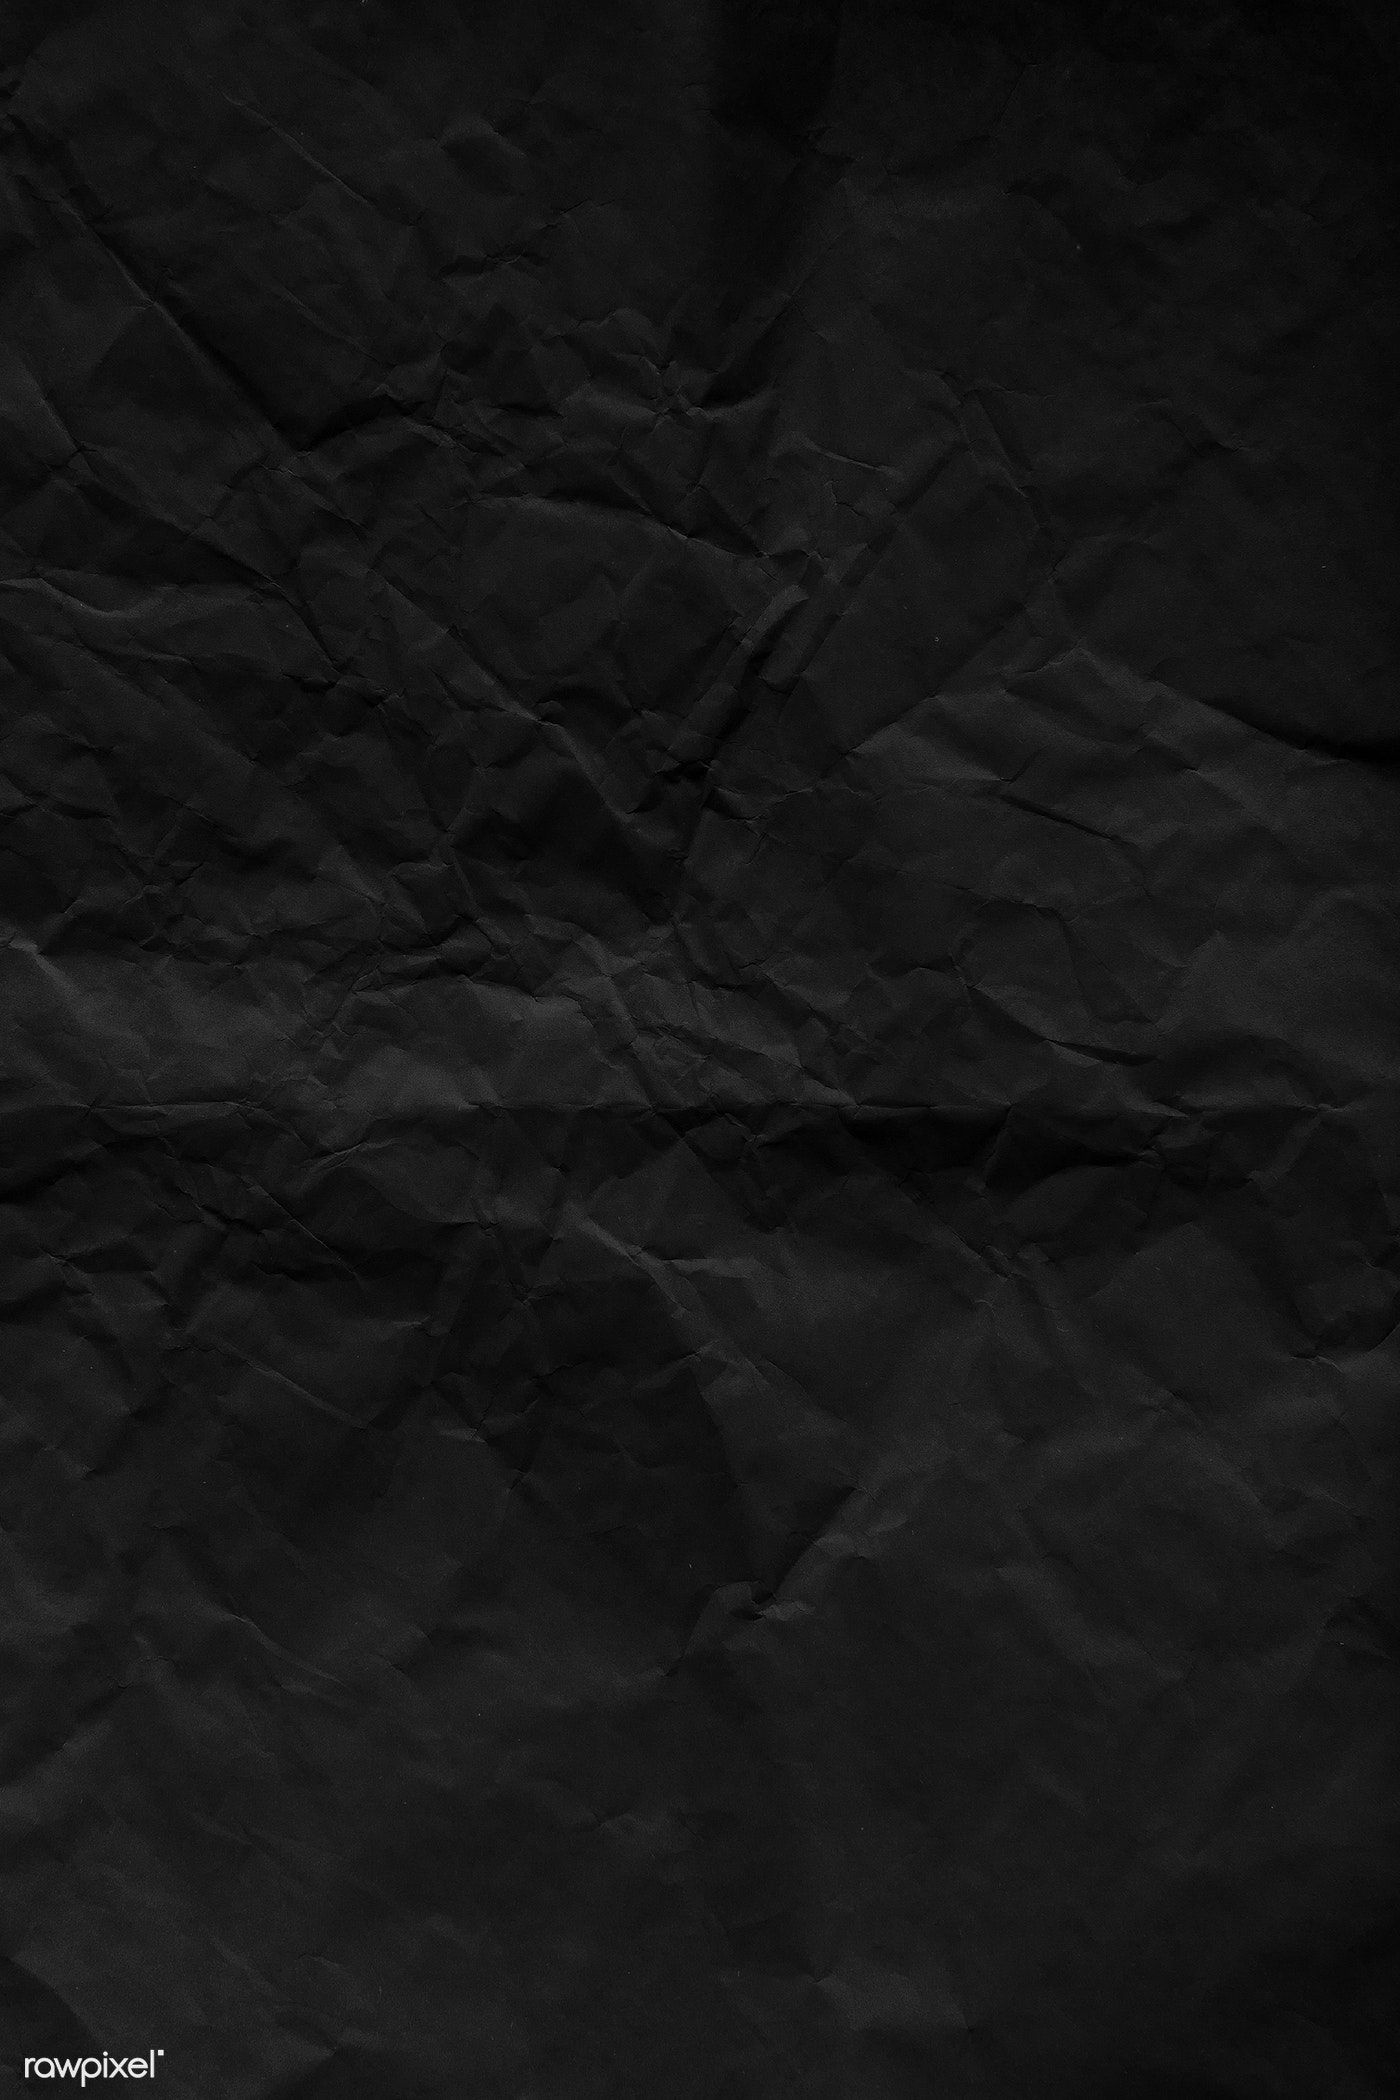 Crumpled Black Paper Textured Background Free Image By Rawpixel Com Katie In 2020 Black Paper Texture Black Texture Background Paper Texture